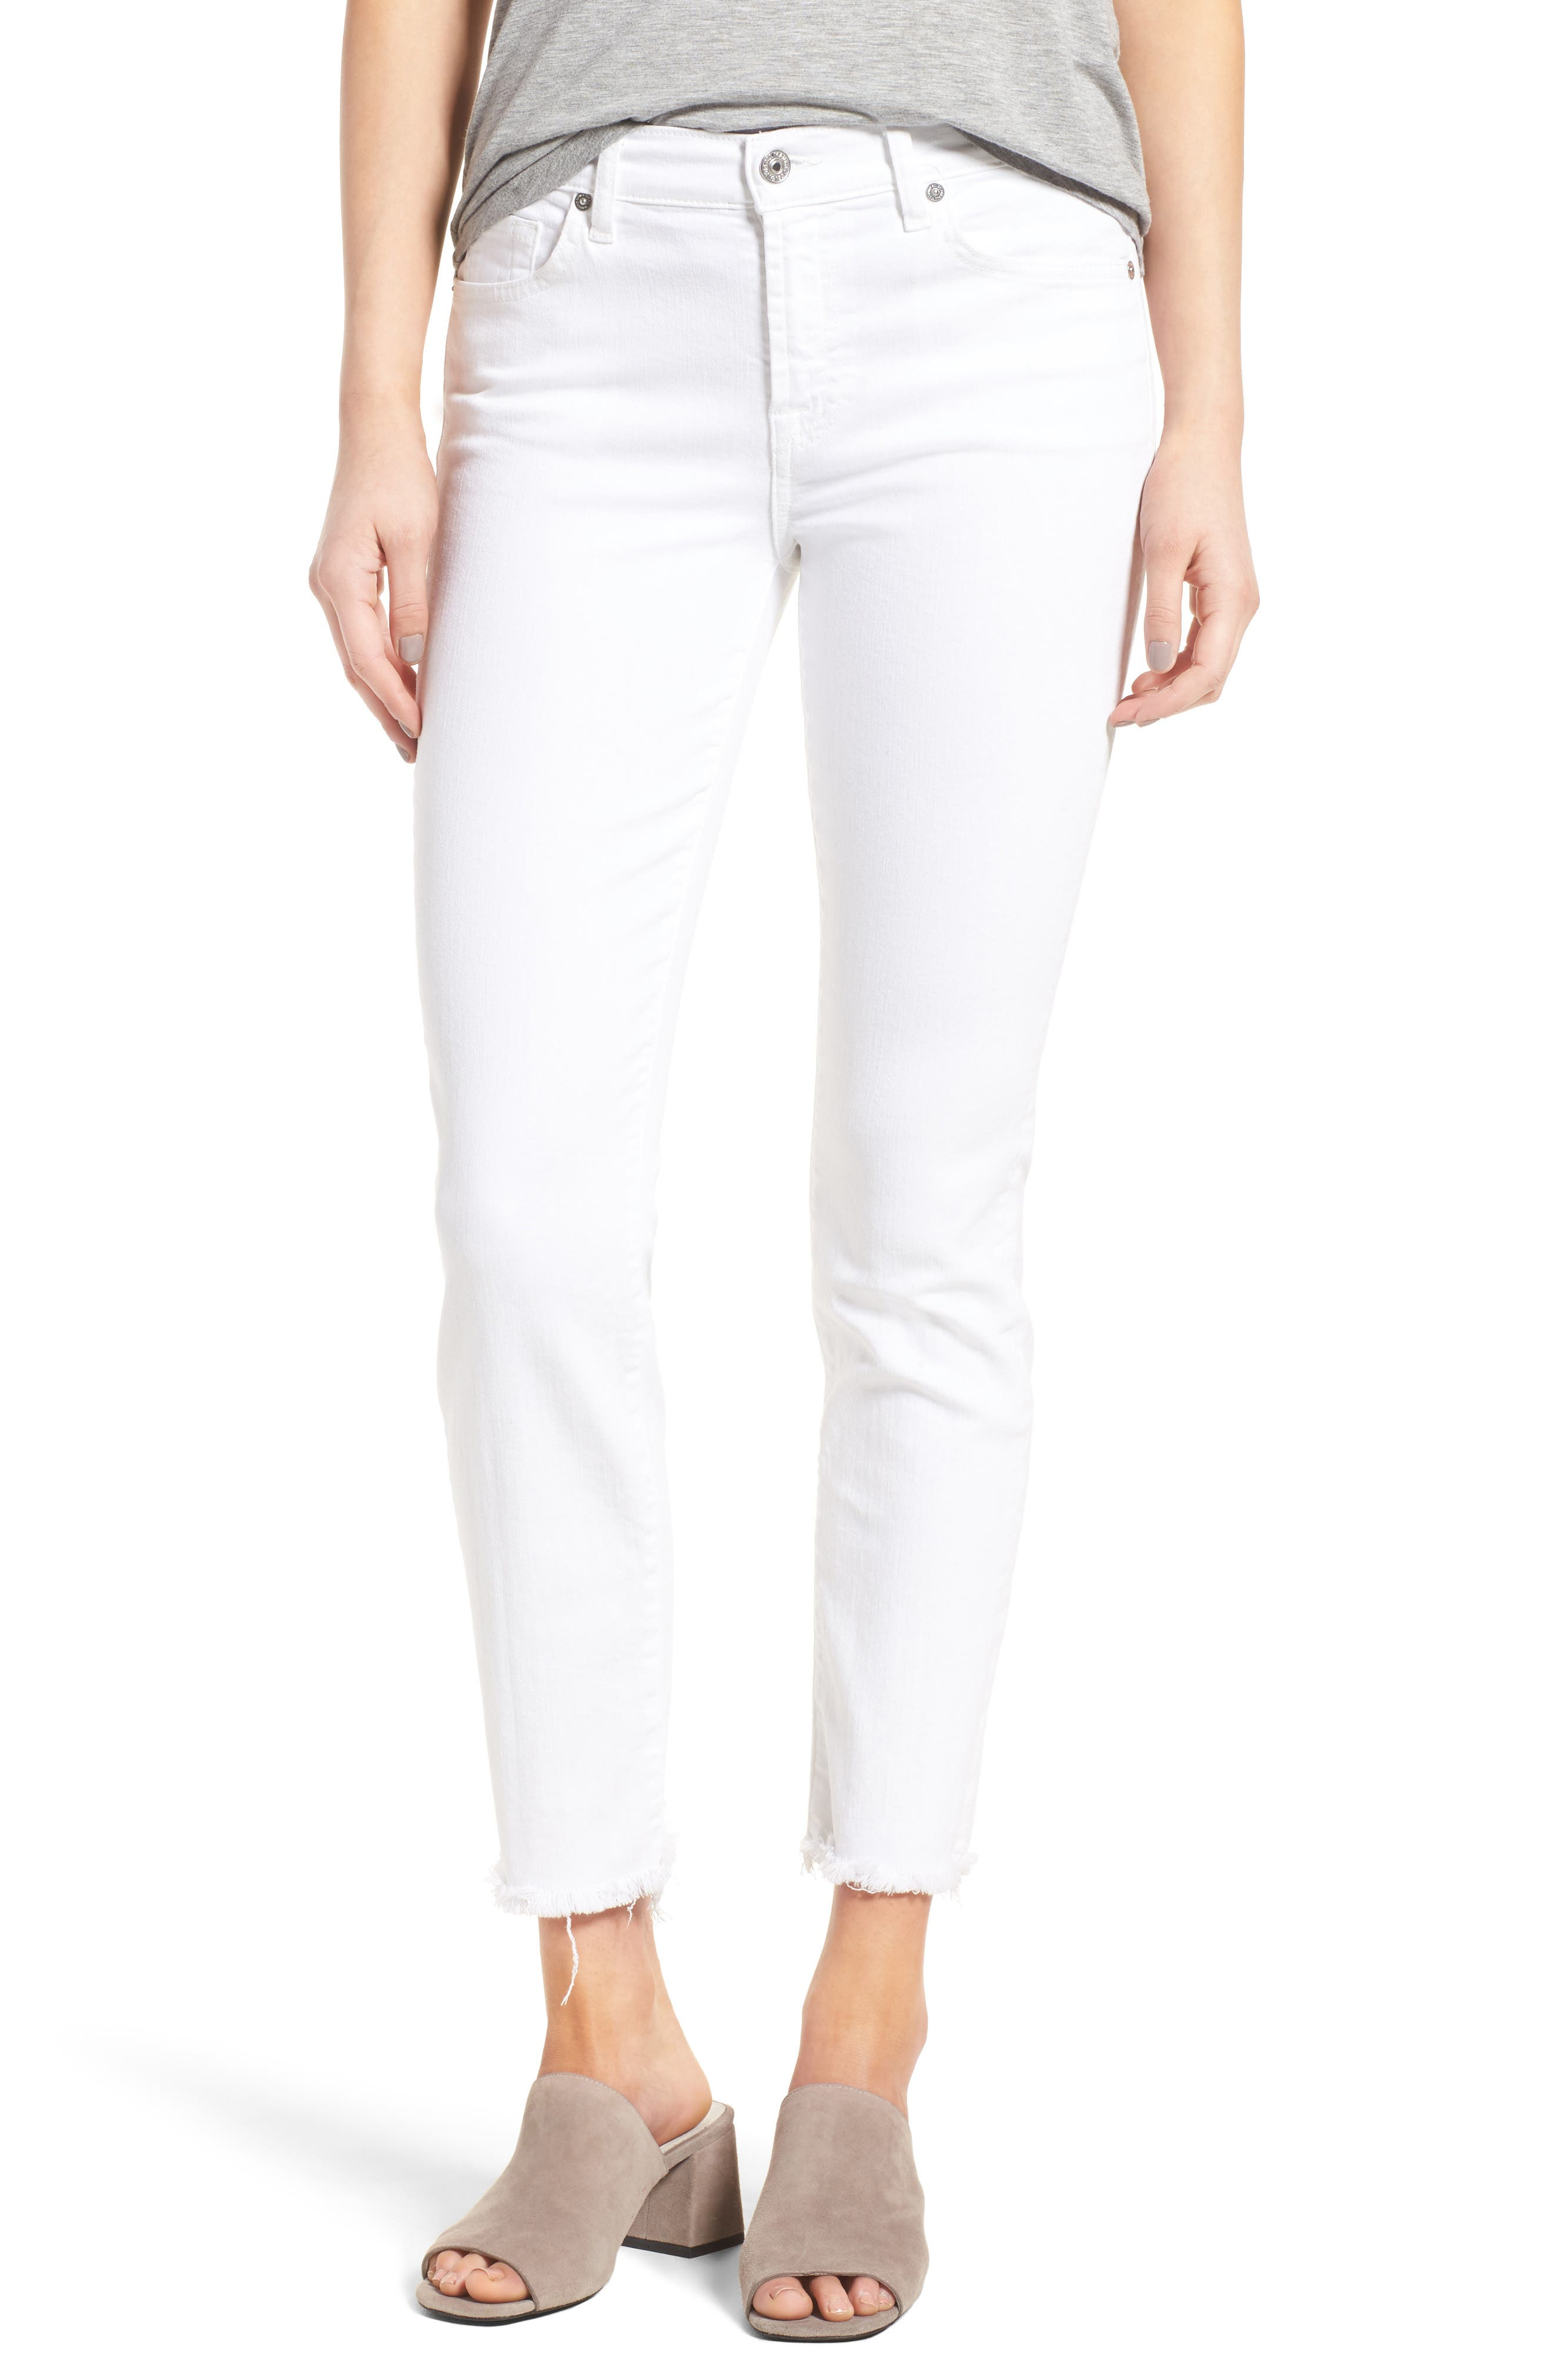 7 For All MankindR Women's 7 For All Mankind Roxanne Ankle Straight Leg Jeans